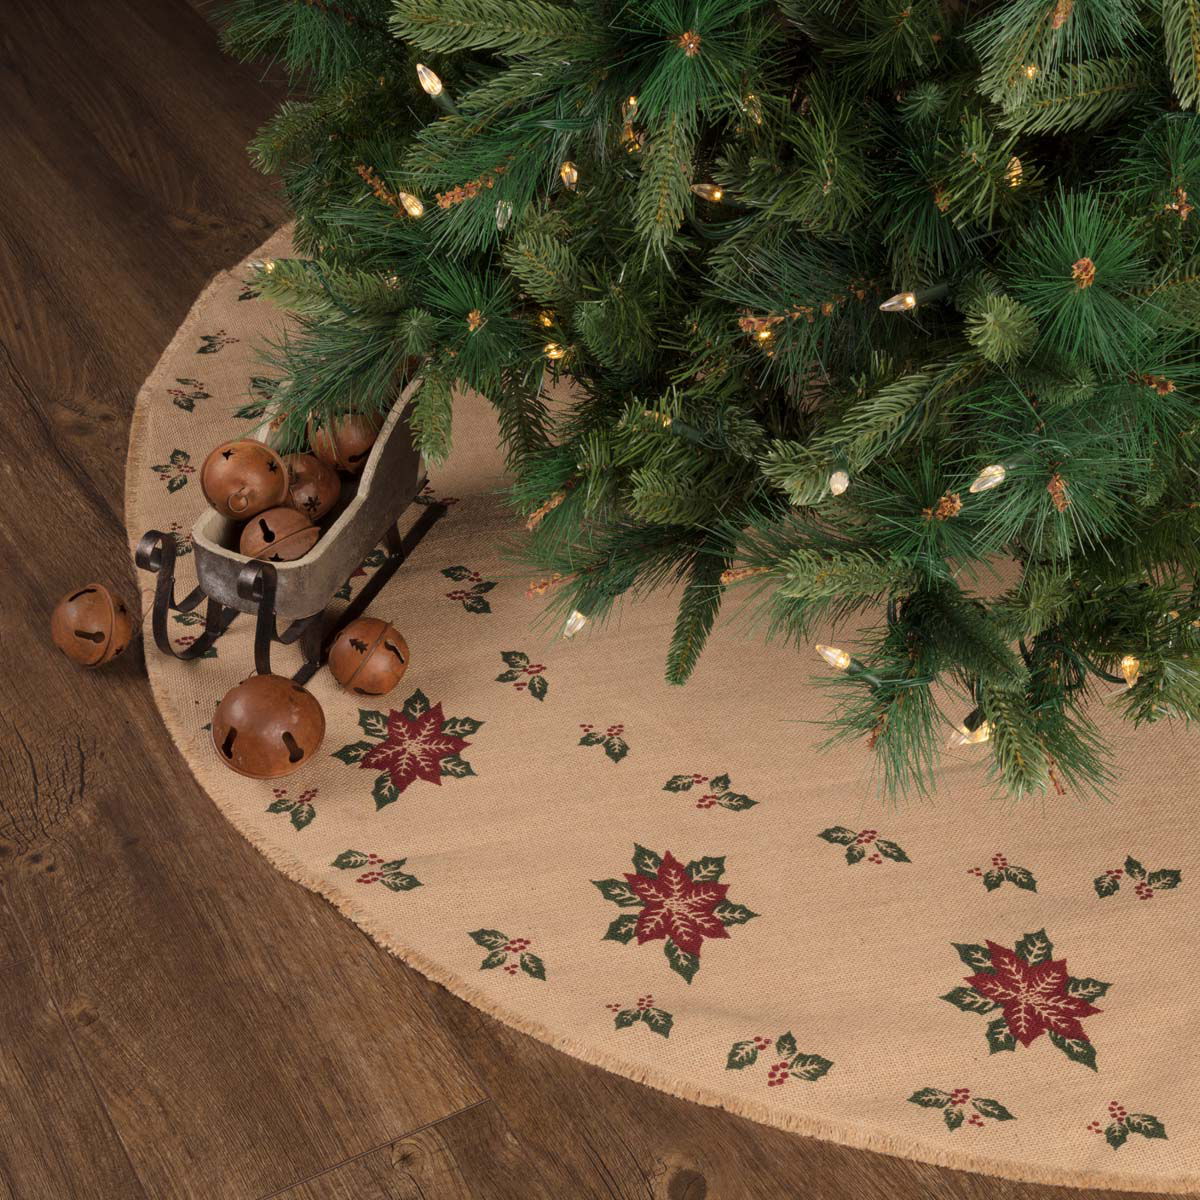 Country Christmas Tree Skirts Patchwork And Embroidered Styles Retro Barn Country Linens